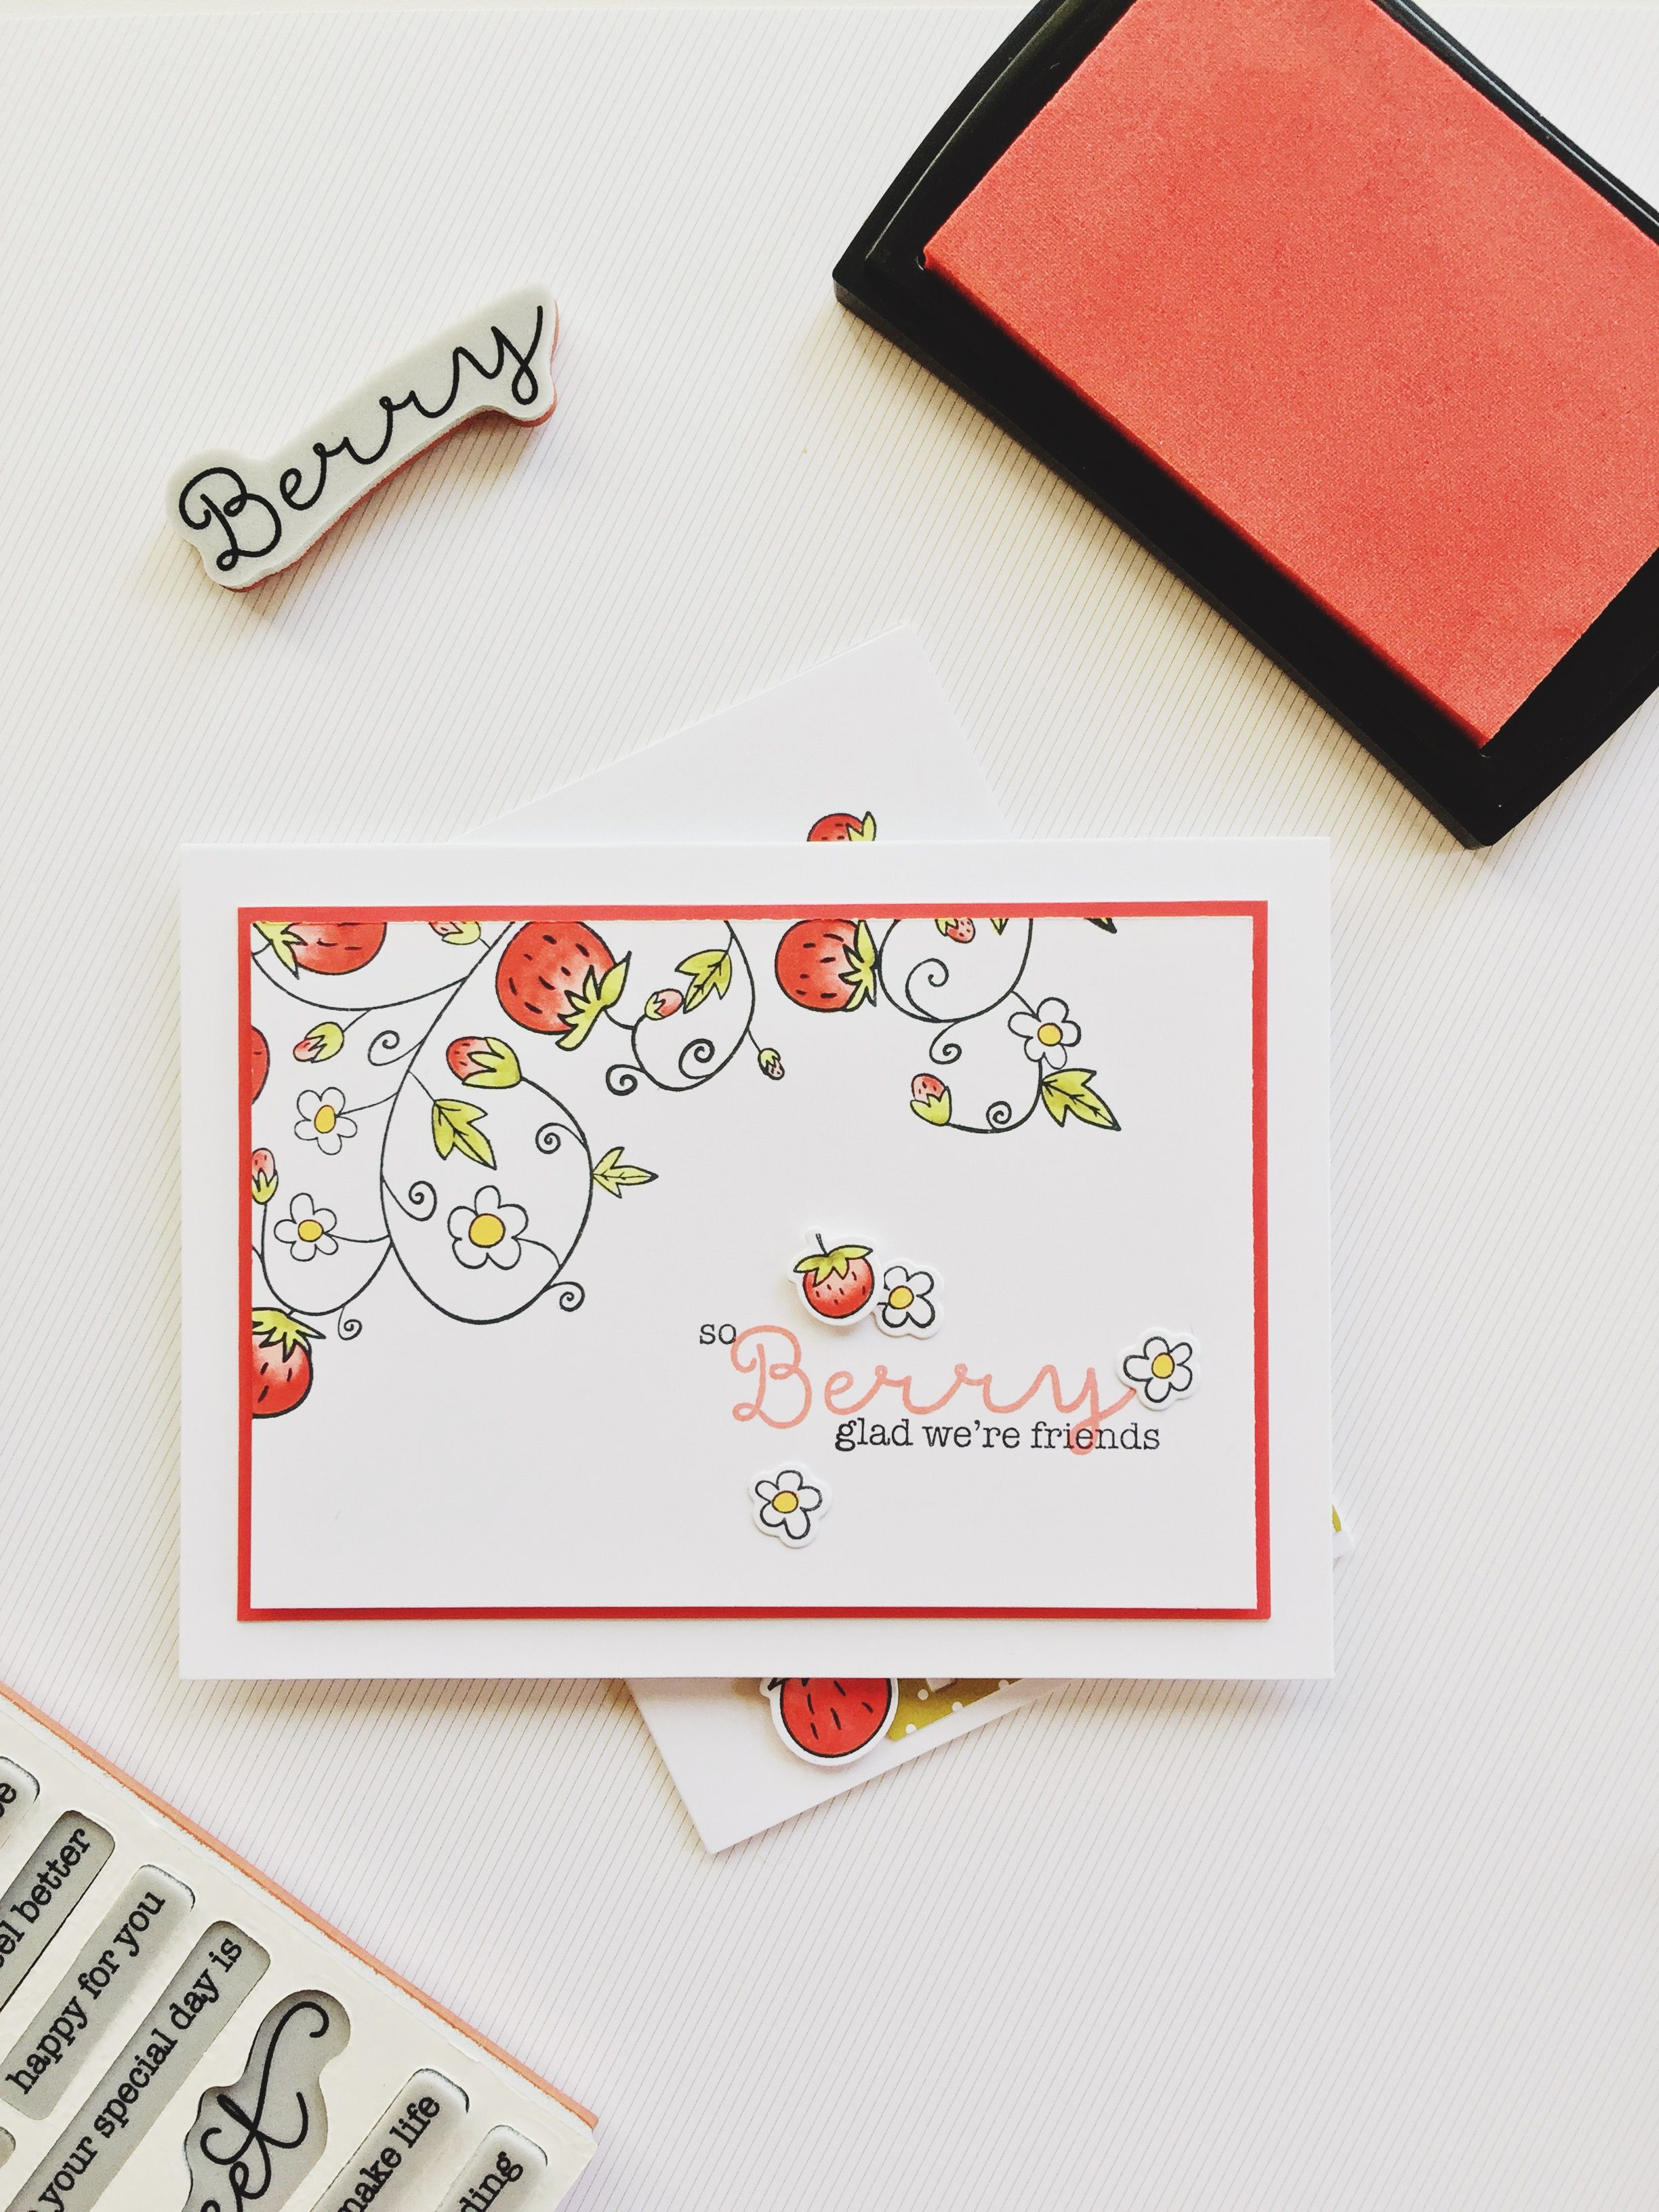 Have similar berry patch stamp